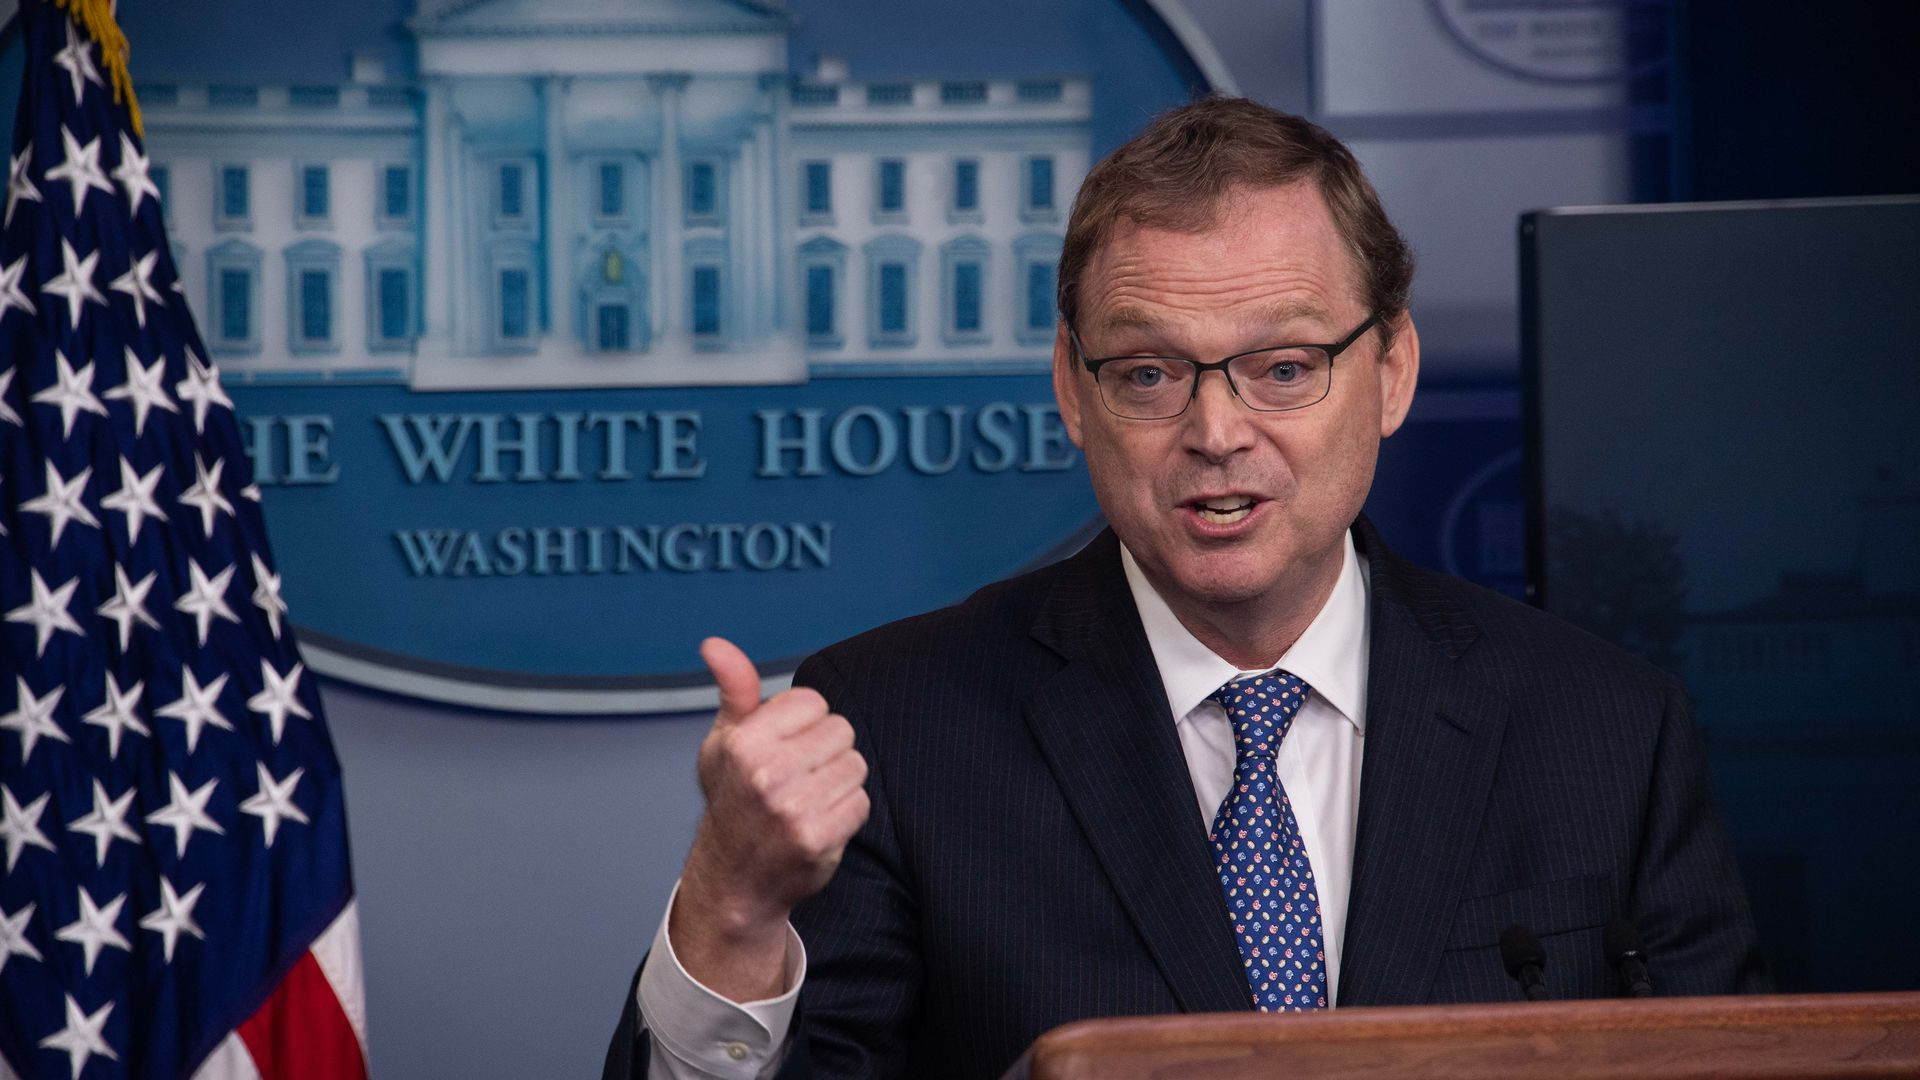 Kevin Hassett, Chairman of the Council of Economic Advisers, speaks during a briefing at the White House in Washington, DC, on September 10, 2018.